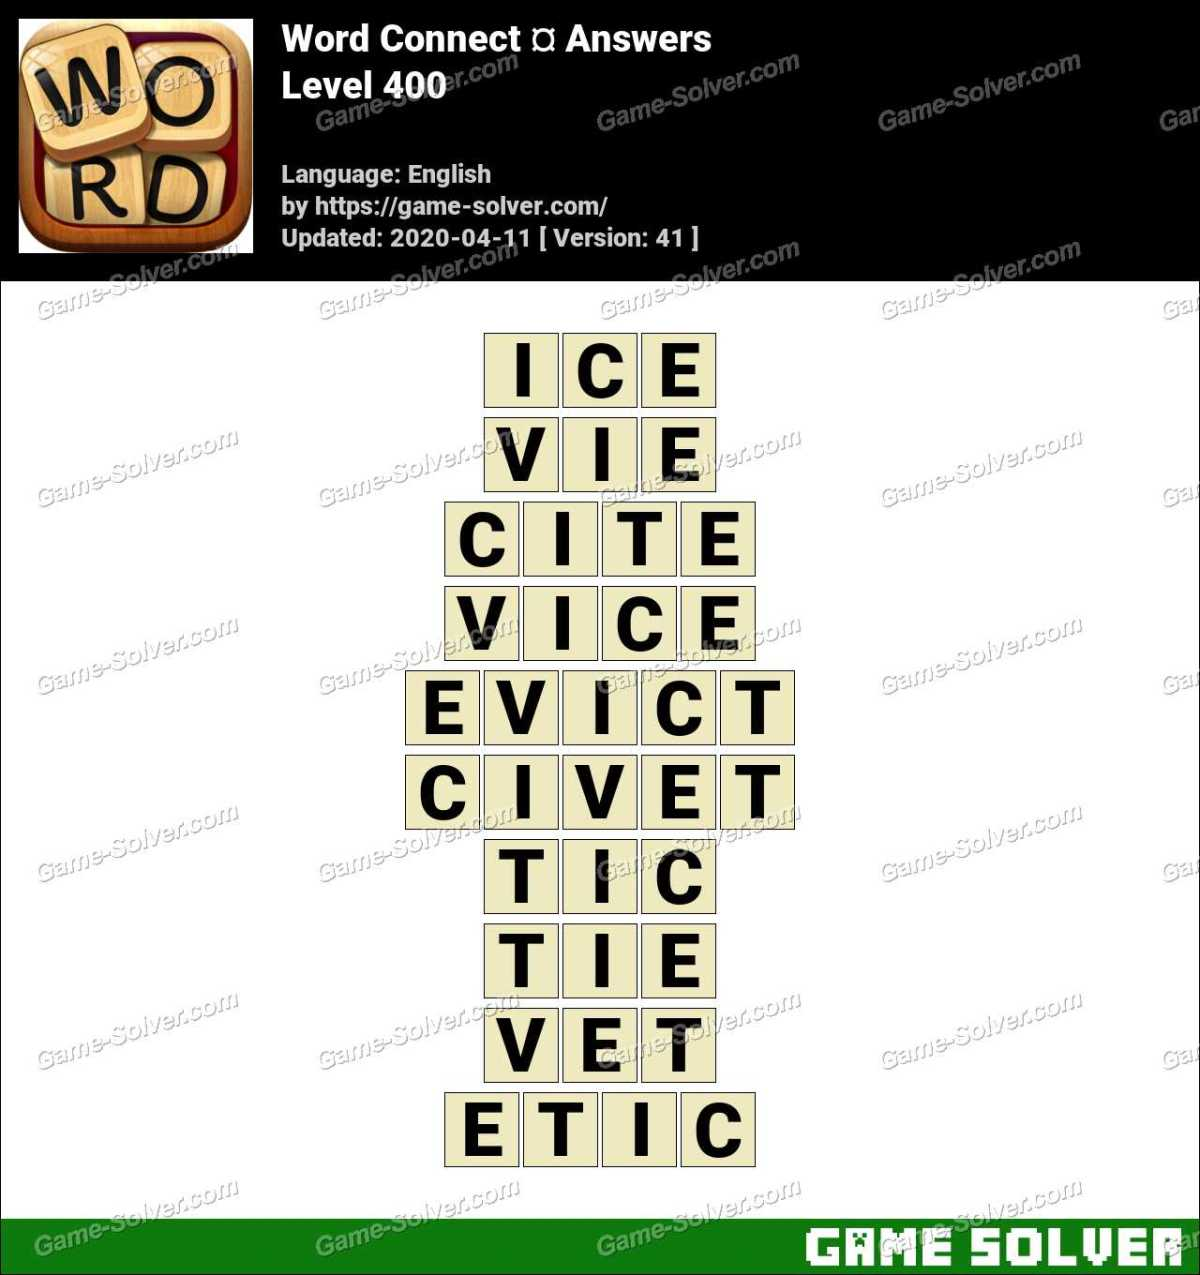 Word Connect Level 400 Answers